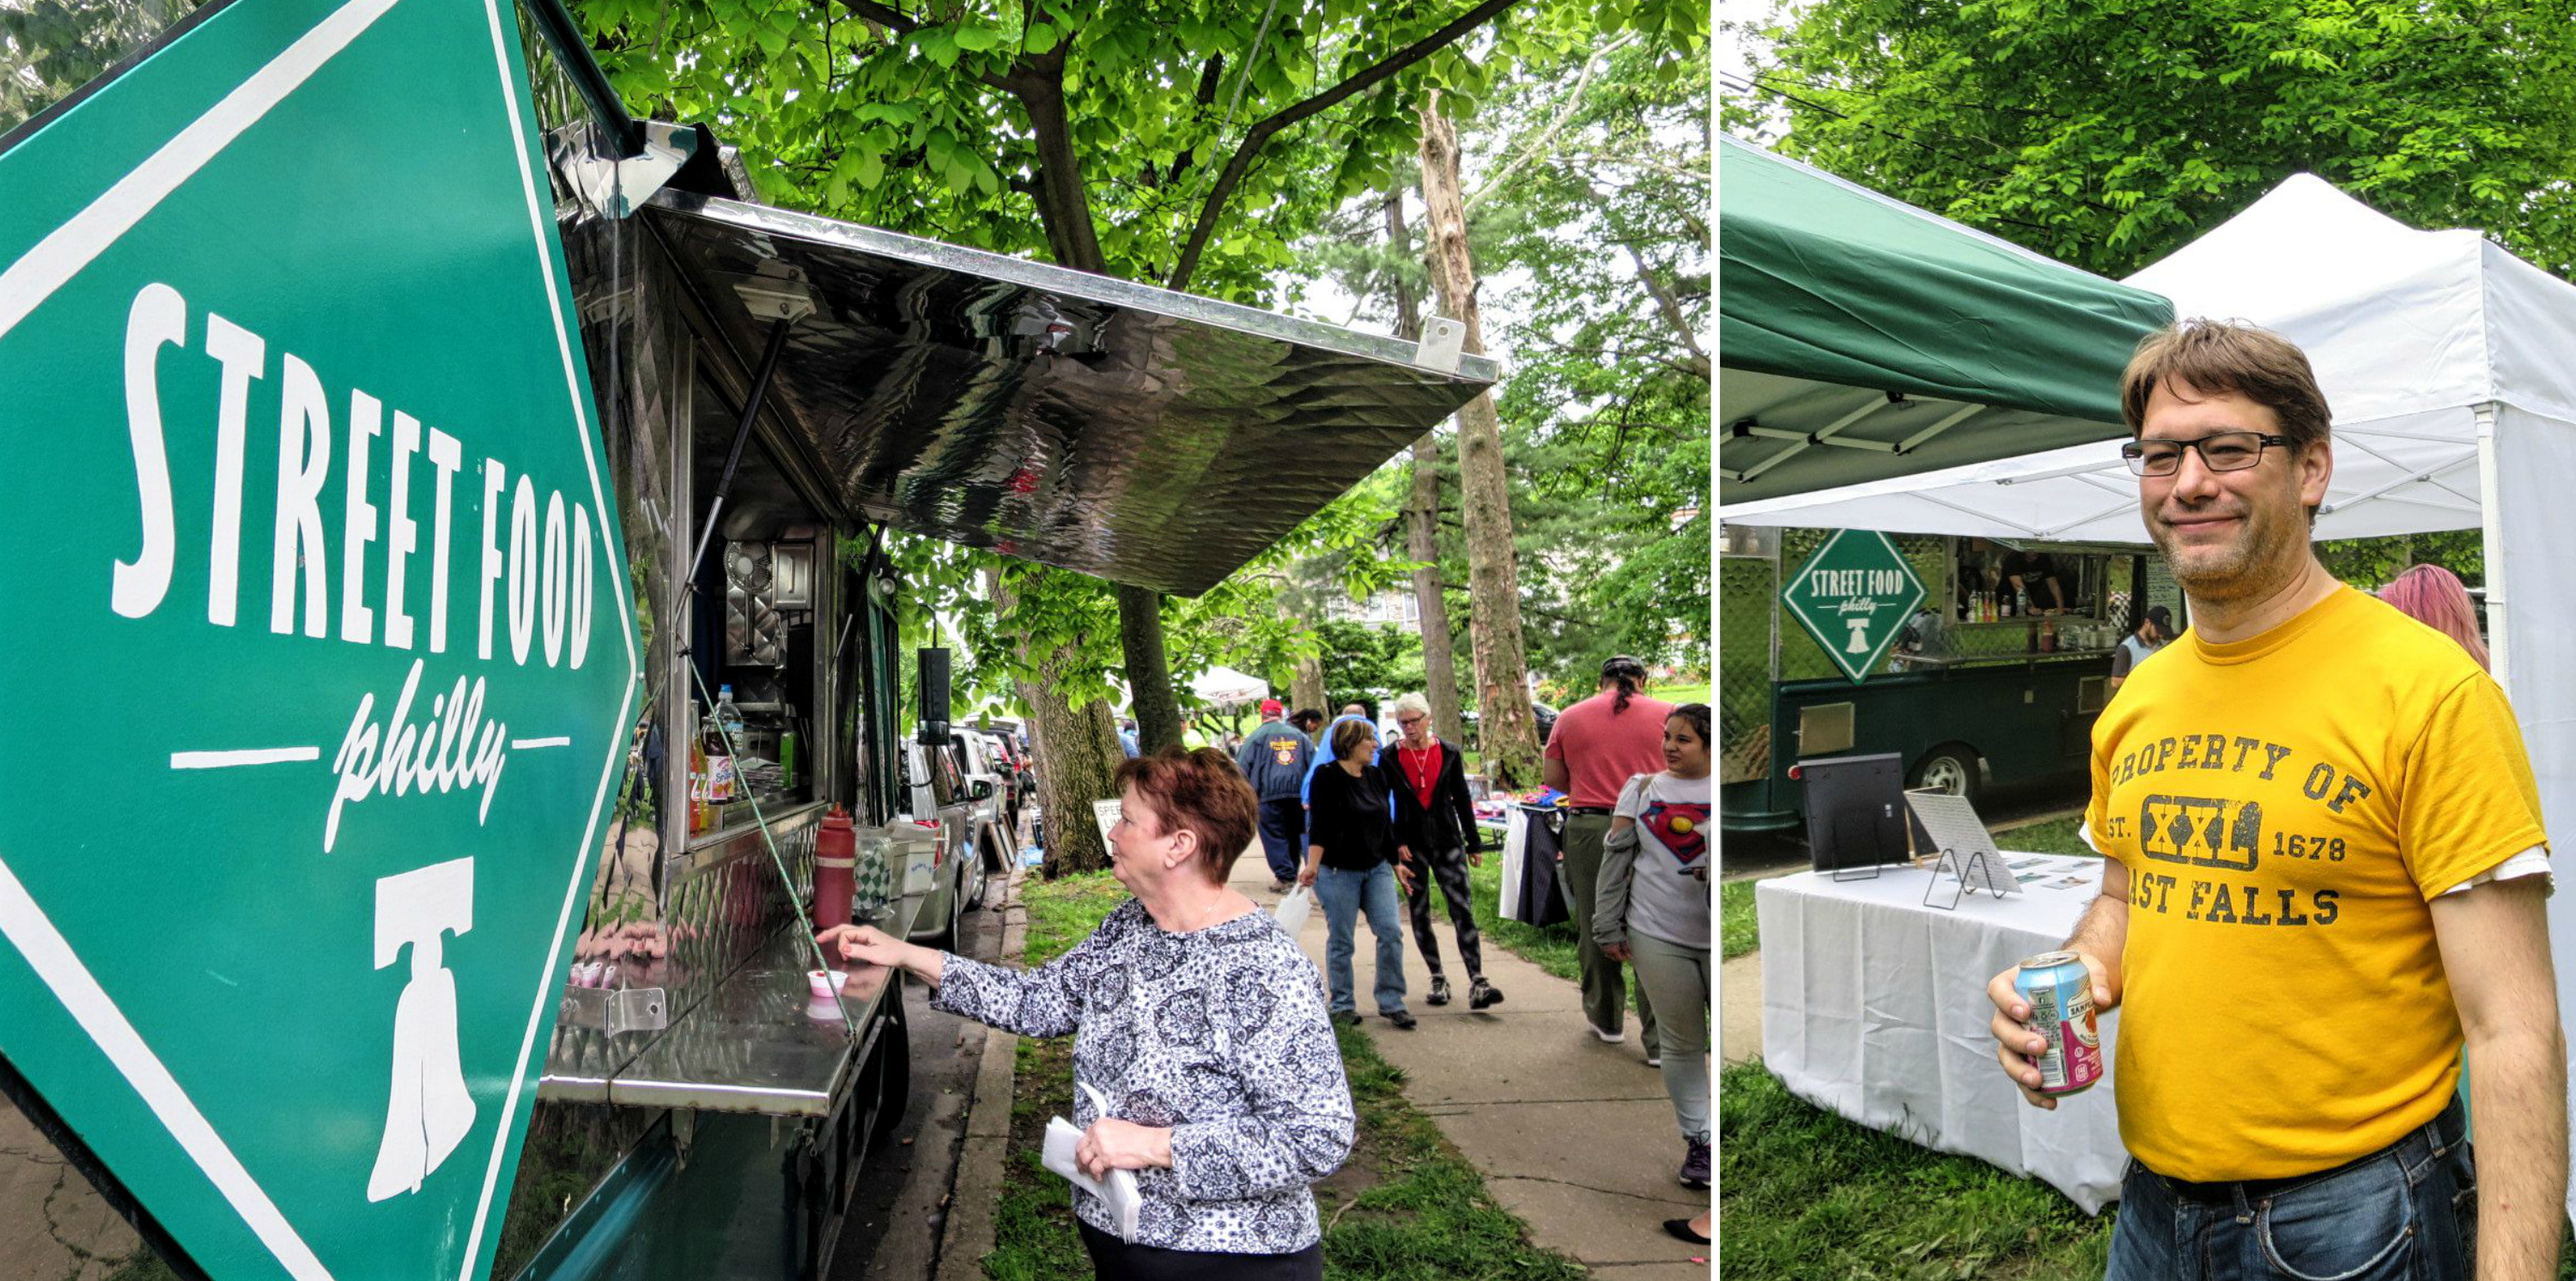 EastFallsLocal food truck collage